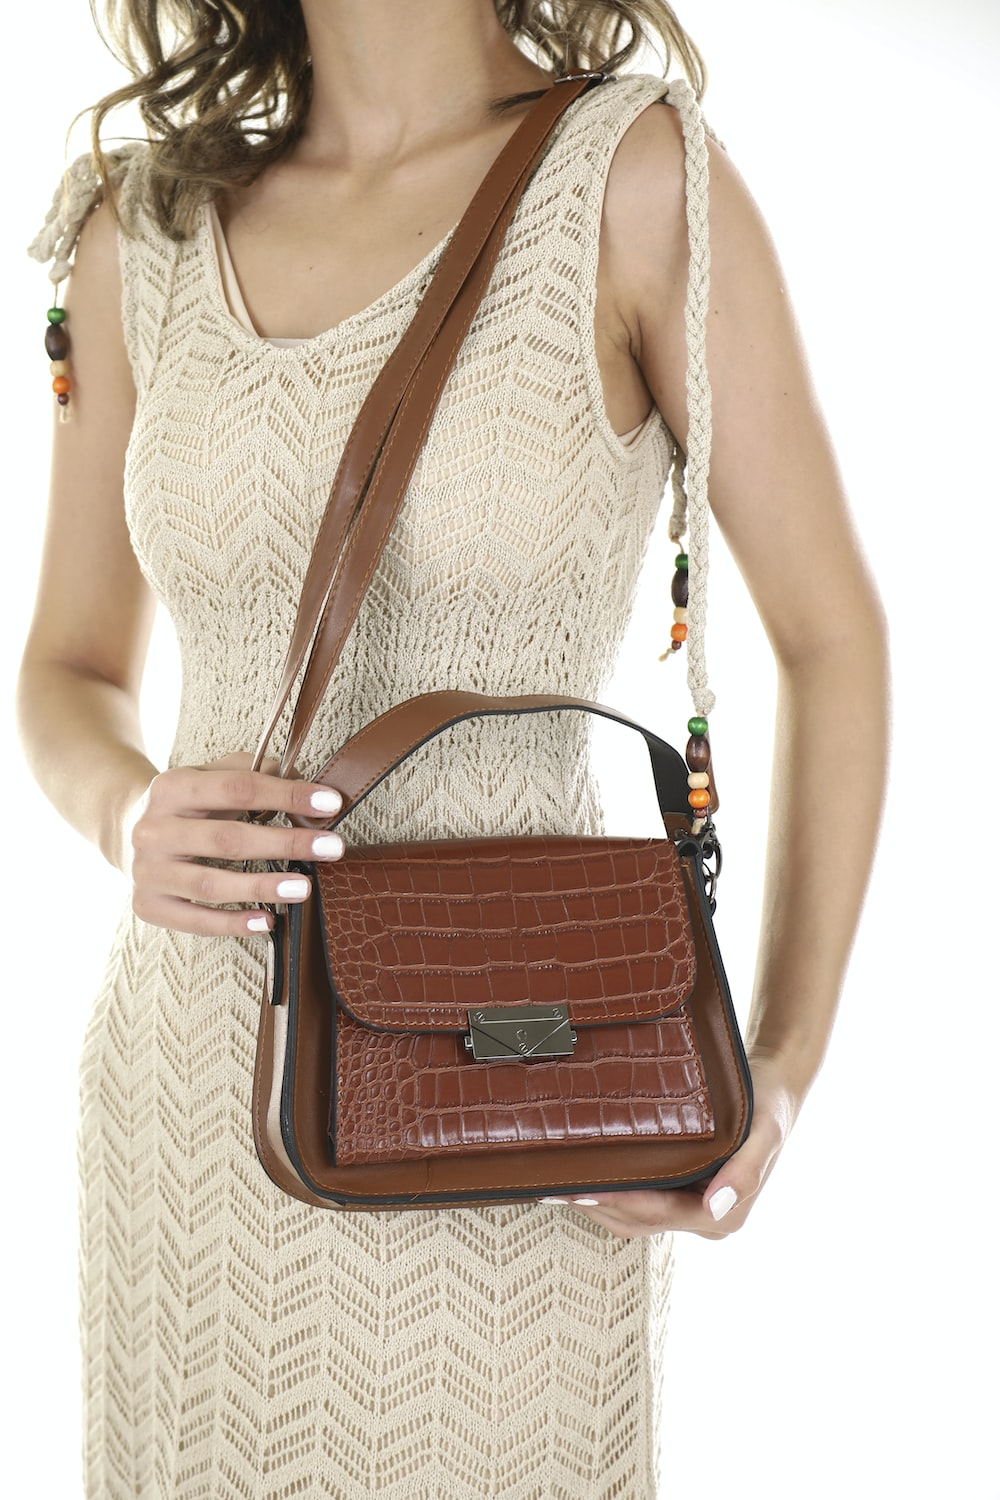 woman in white lace tank top carrying brown leather sling bag